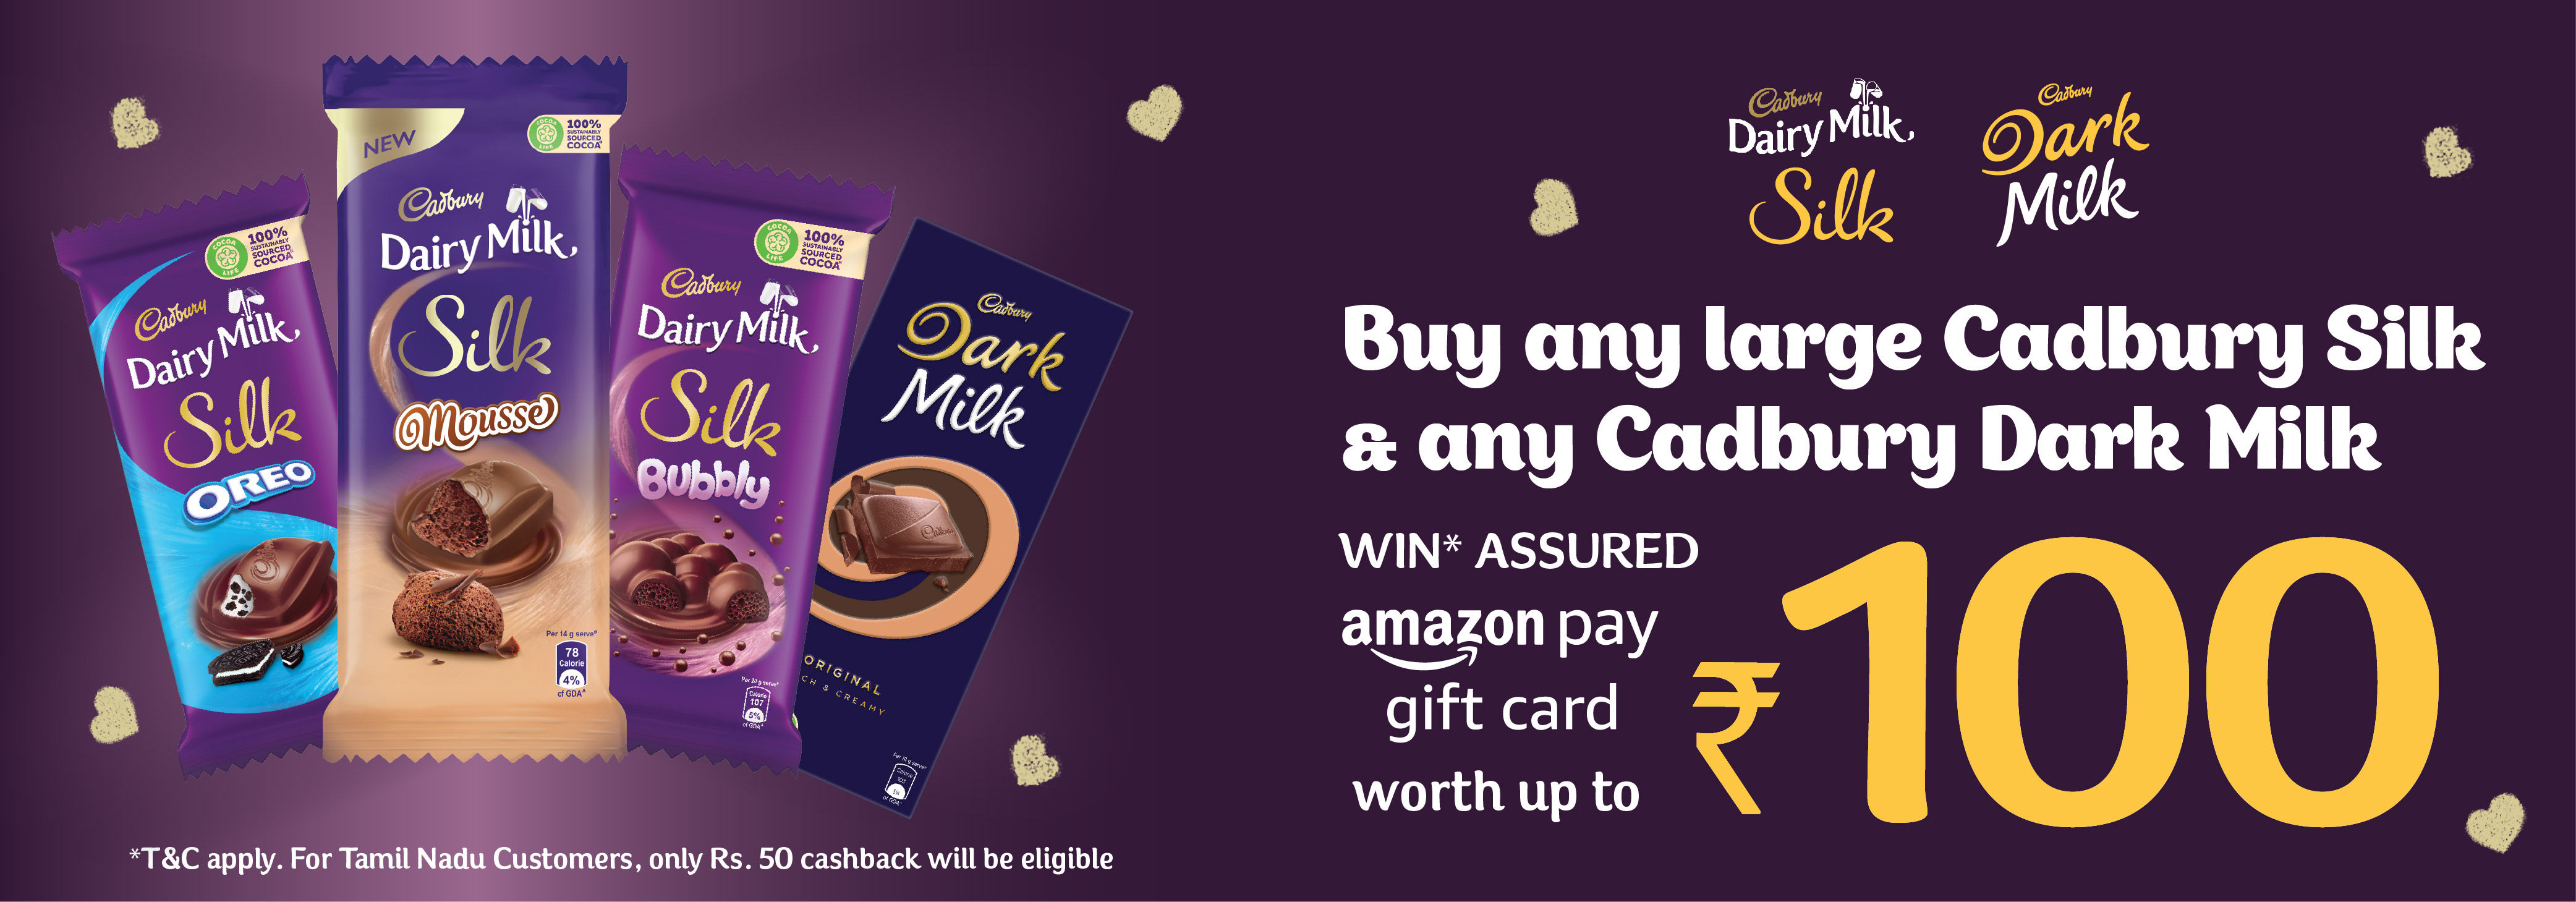 Buy Dairy milk products and win Amazon Pay gift cards up to Rs 100